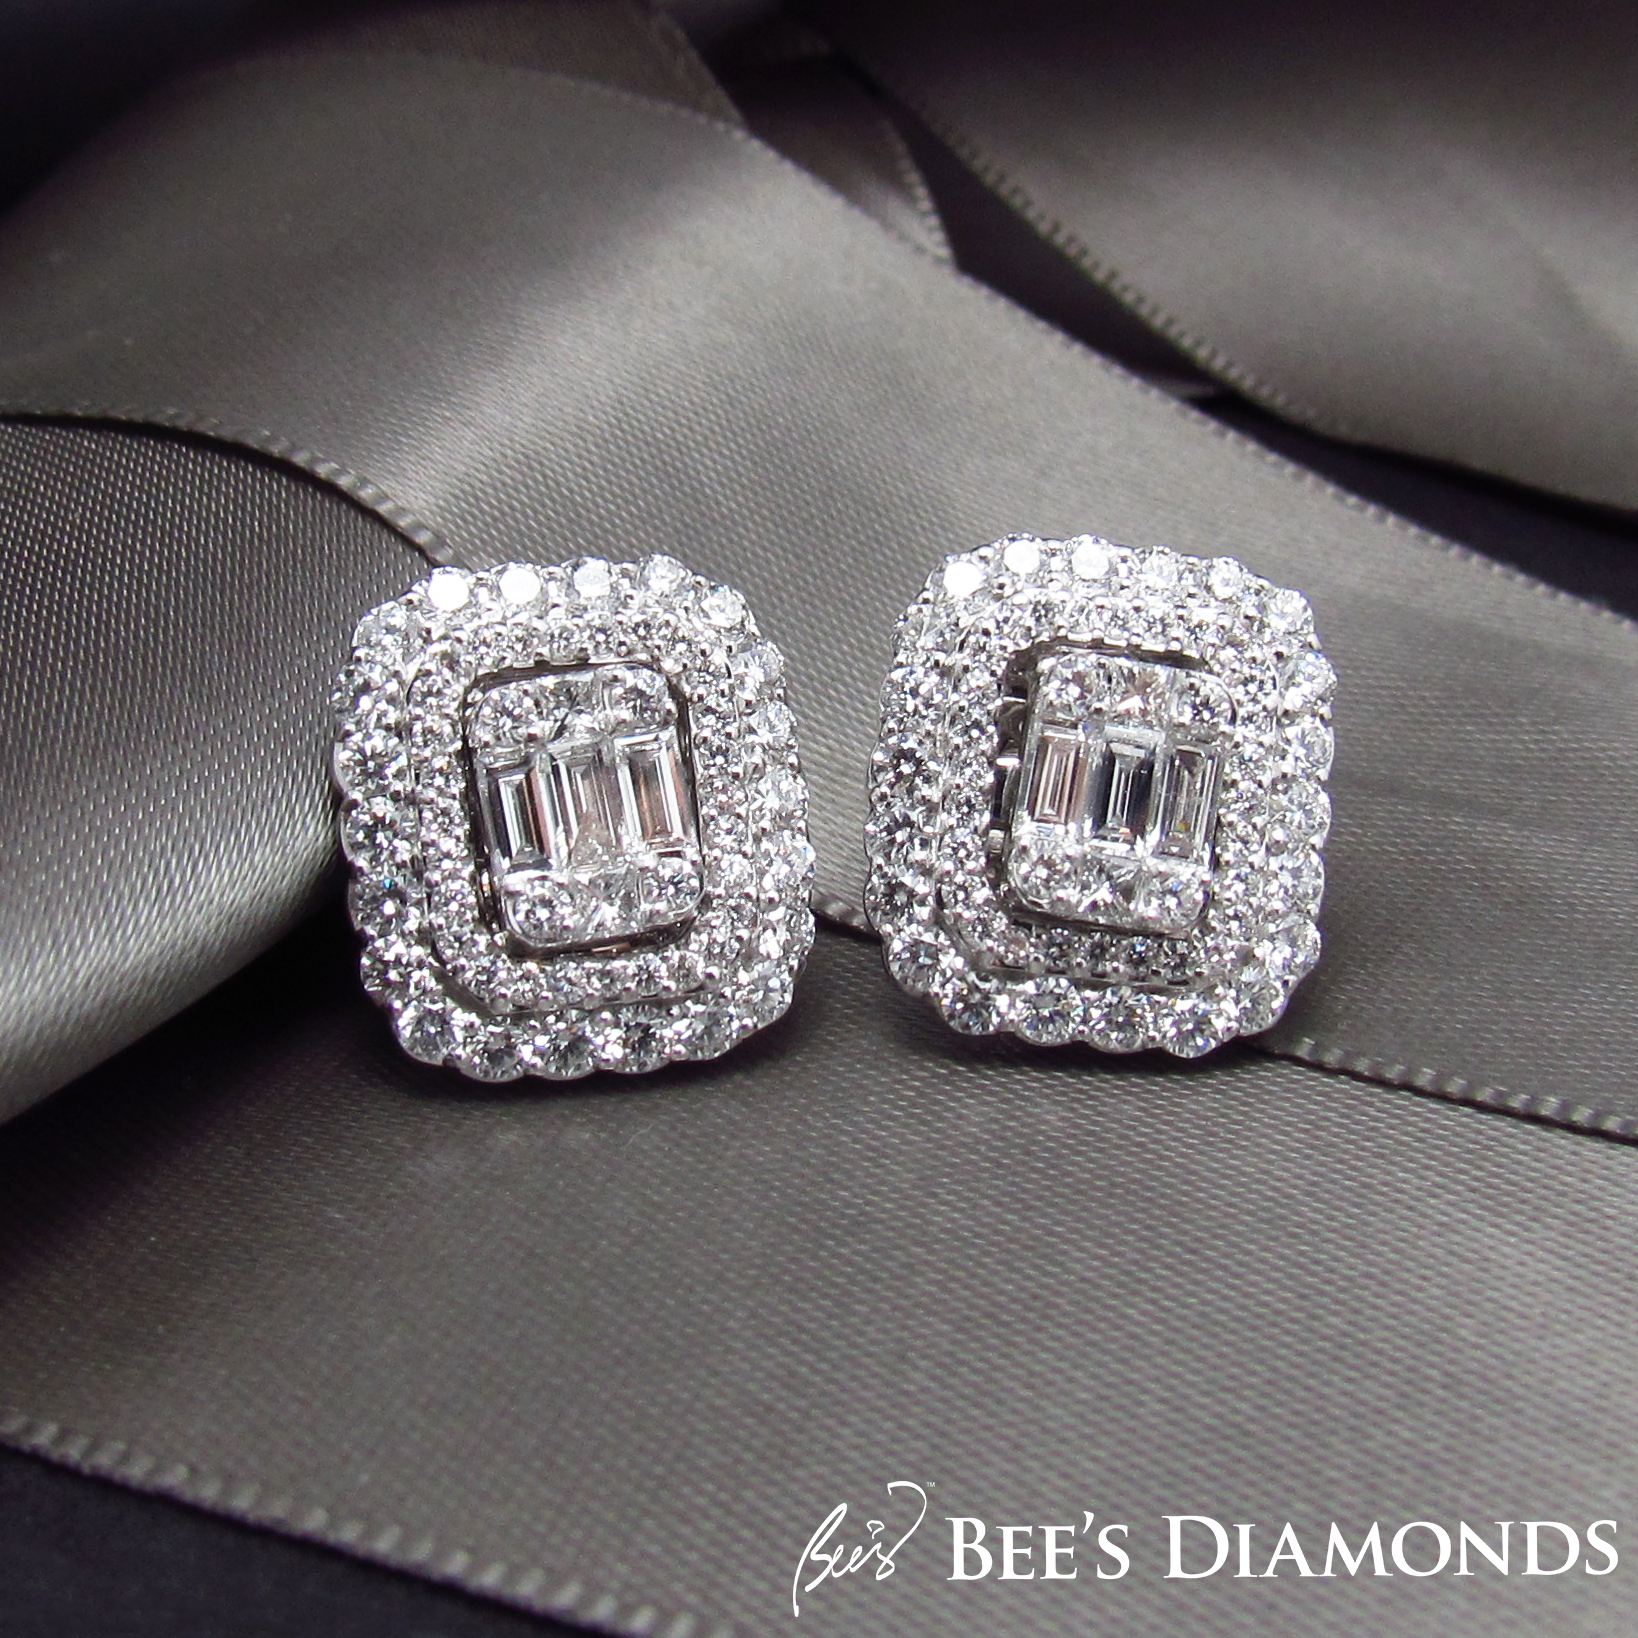 Rectangular, cusom made diamond earrings halos | Bee's Diamonds